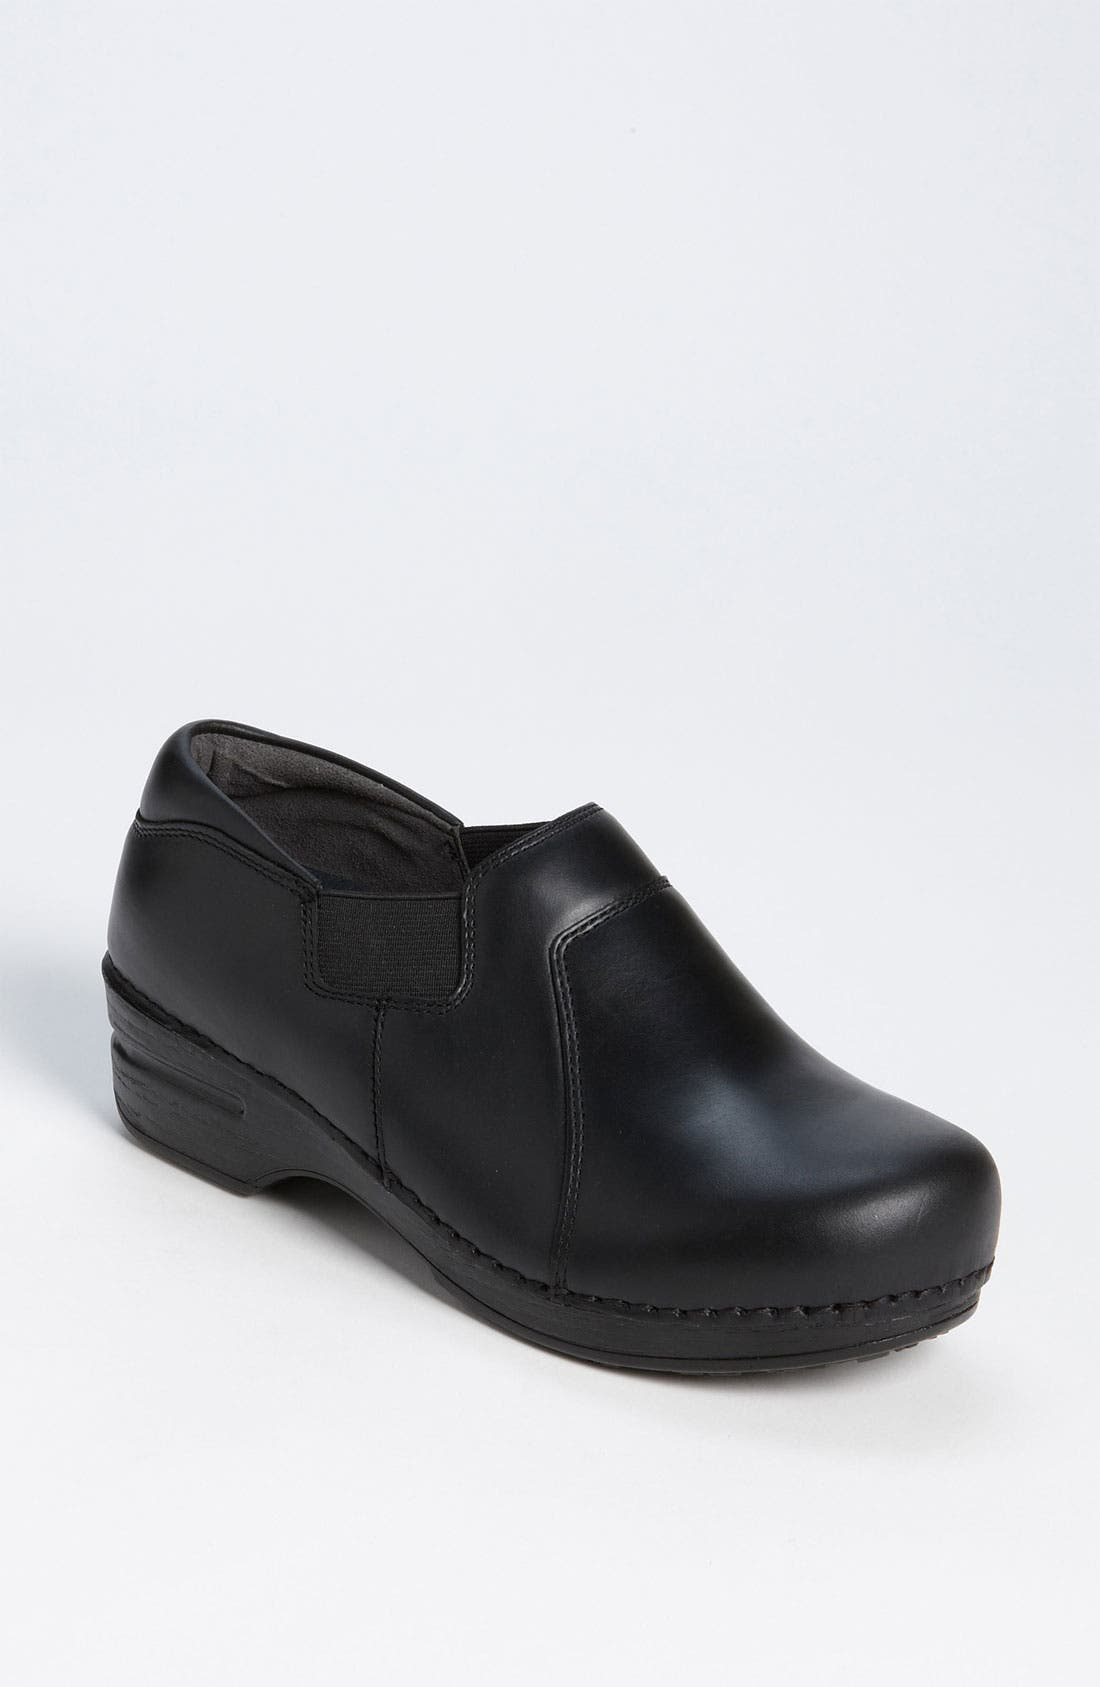 Alternate Image 1 Selected - Dansko 'Tatum' Clog